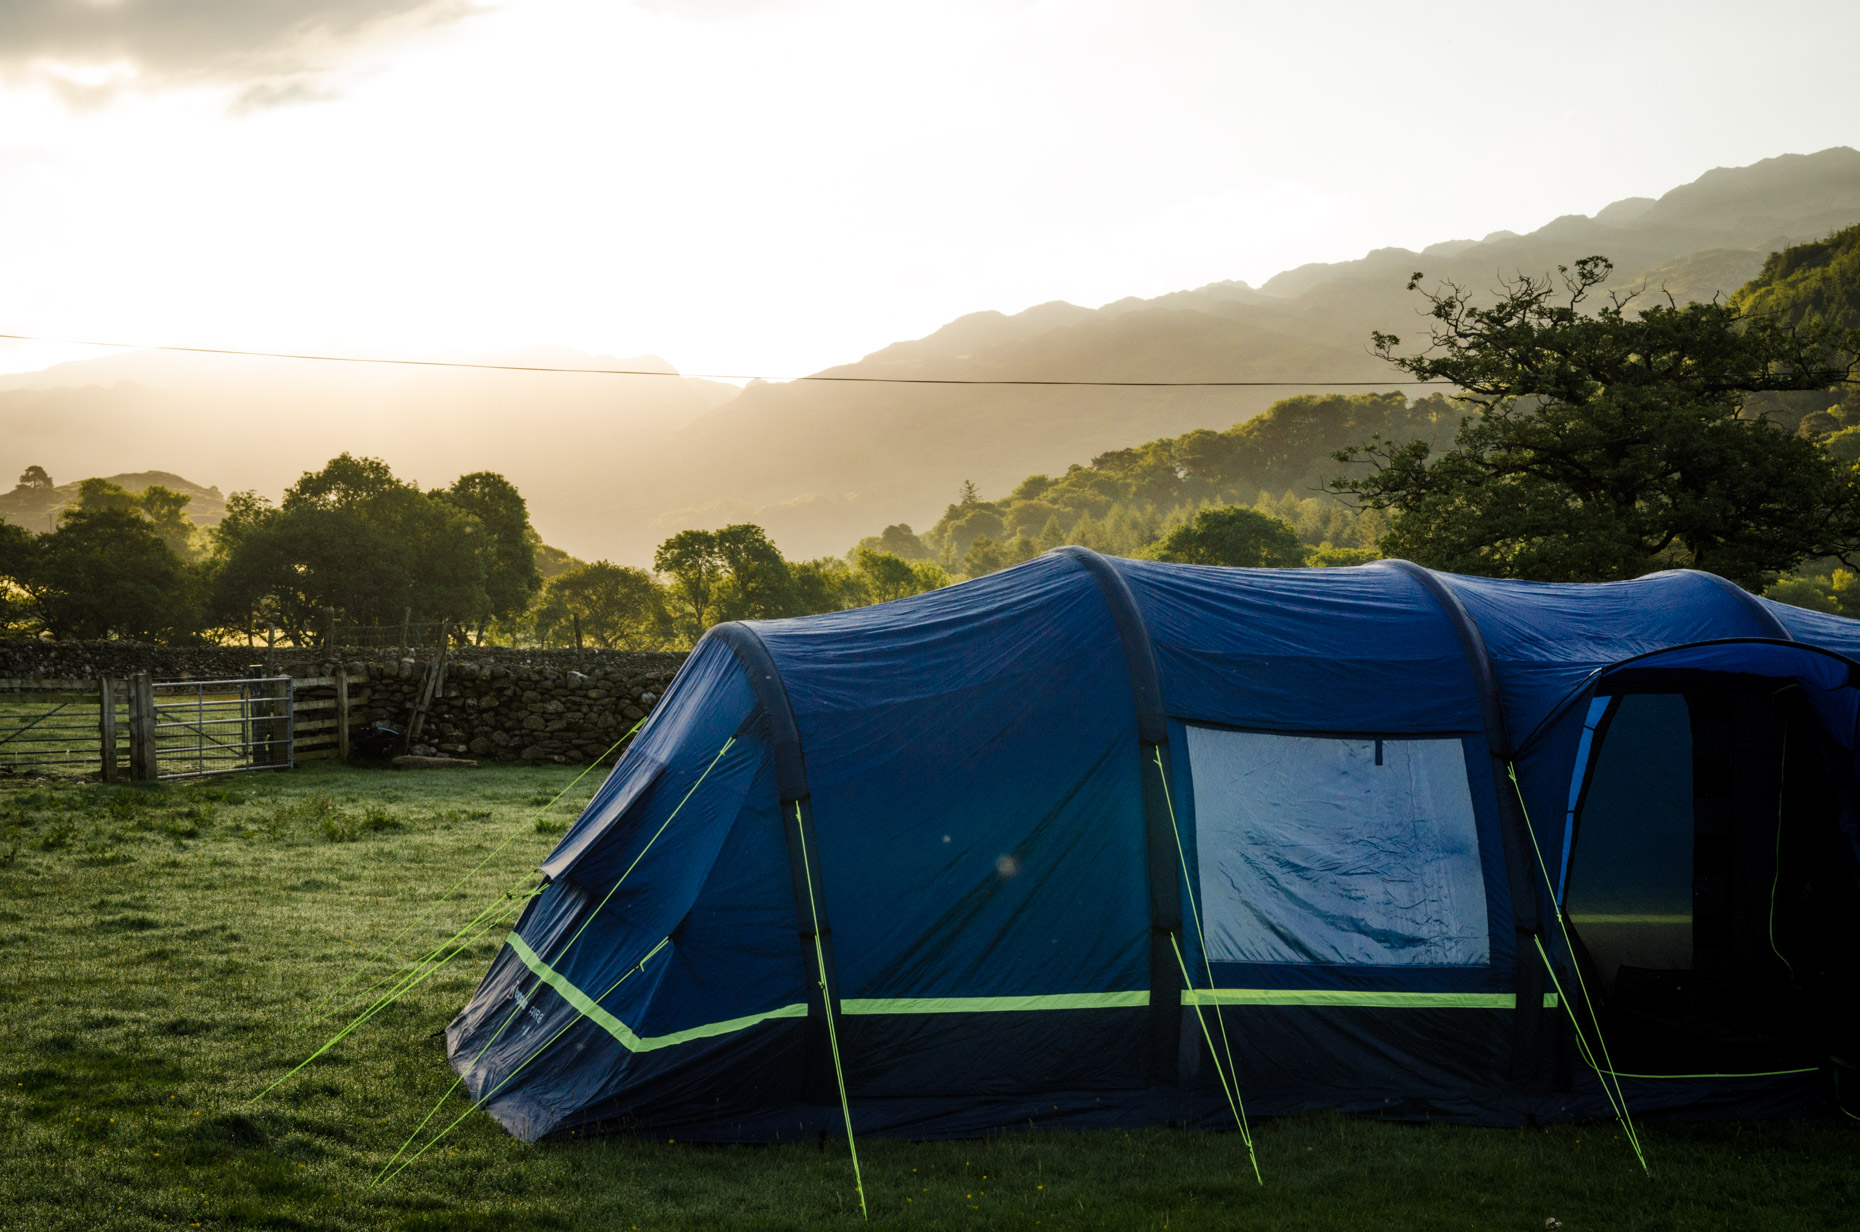 Stunning camp sites ruined by midges